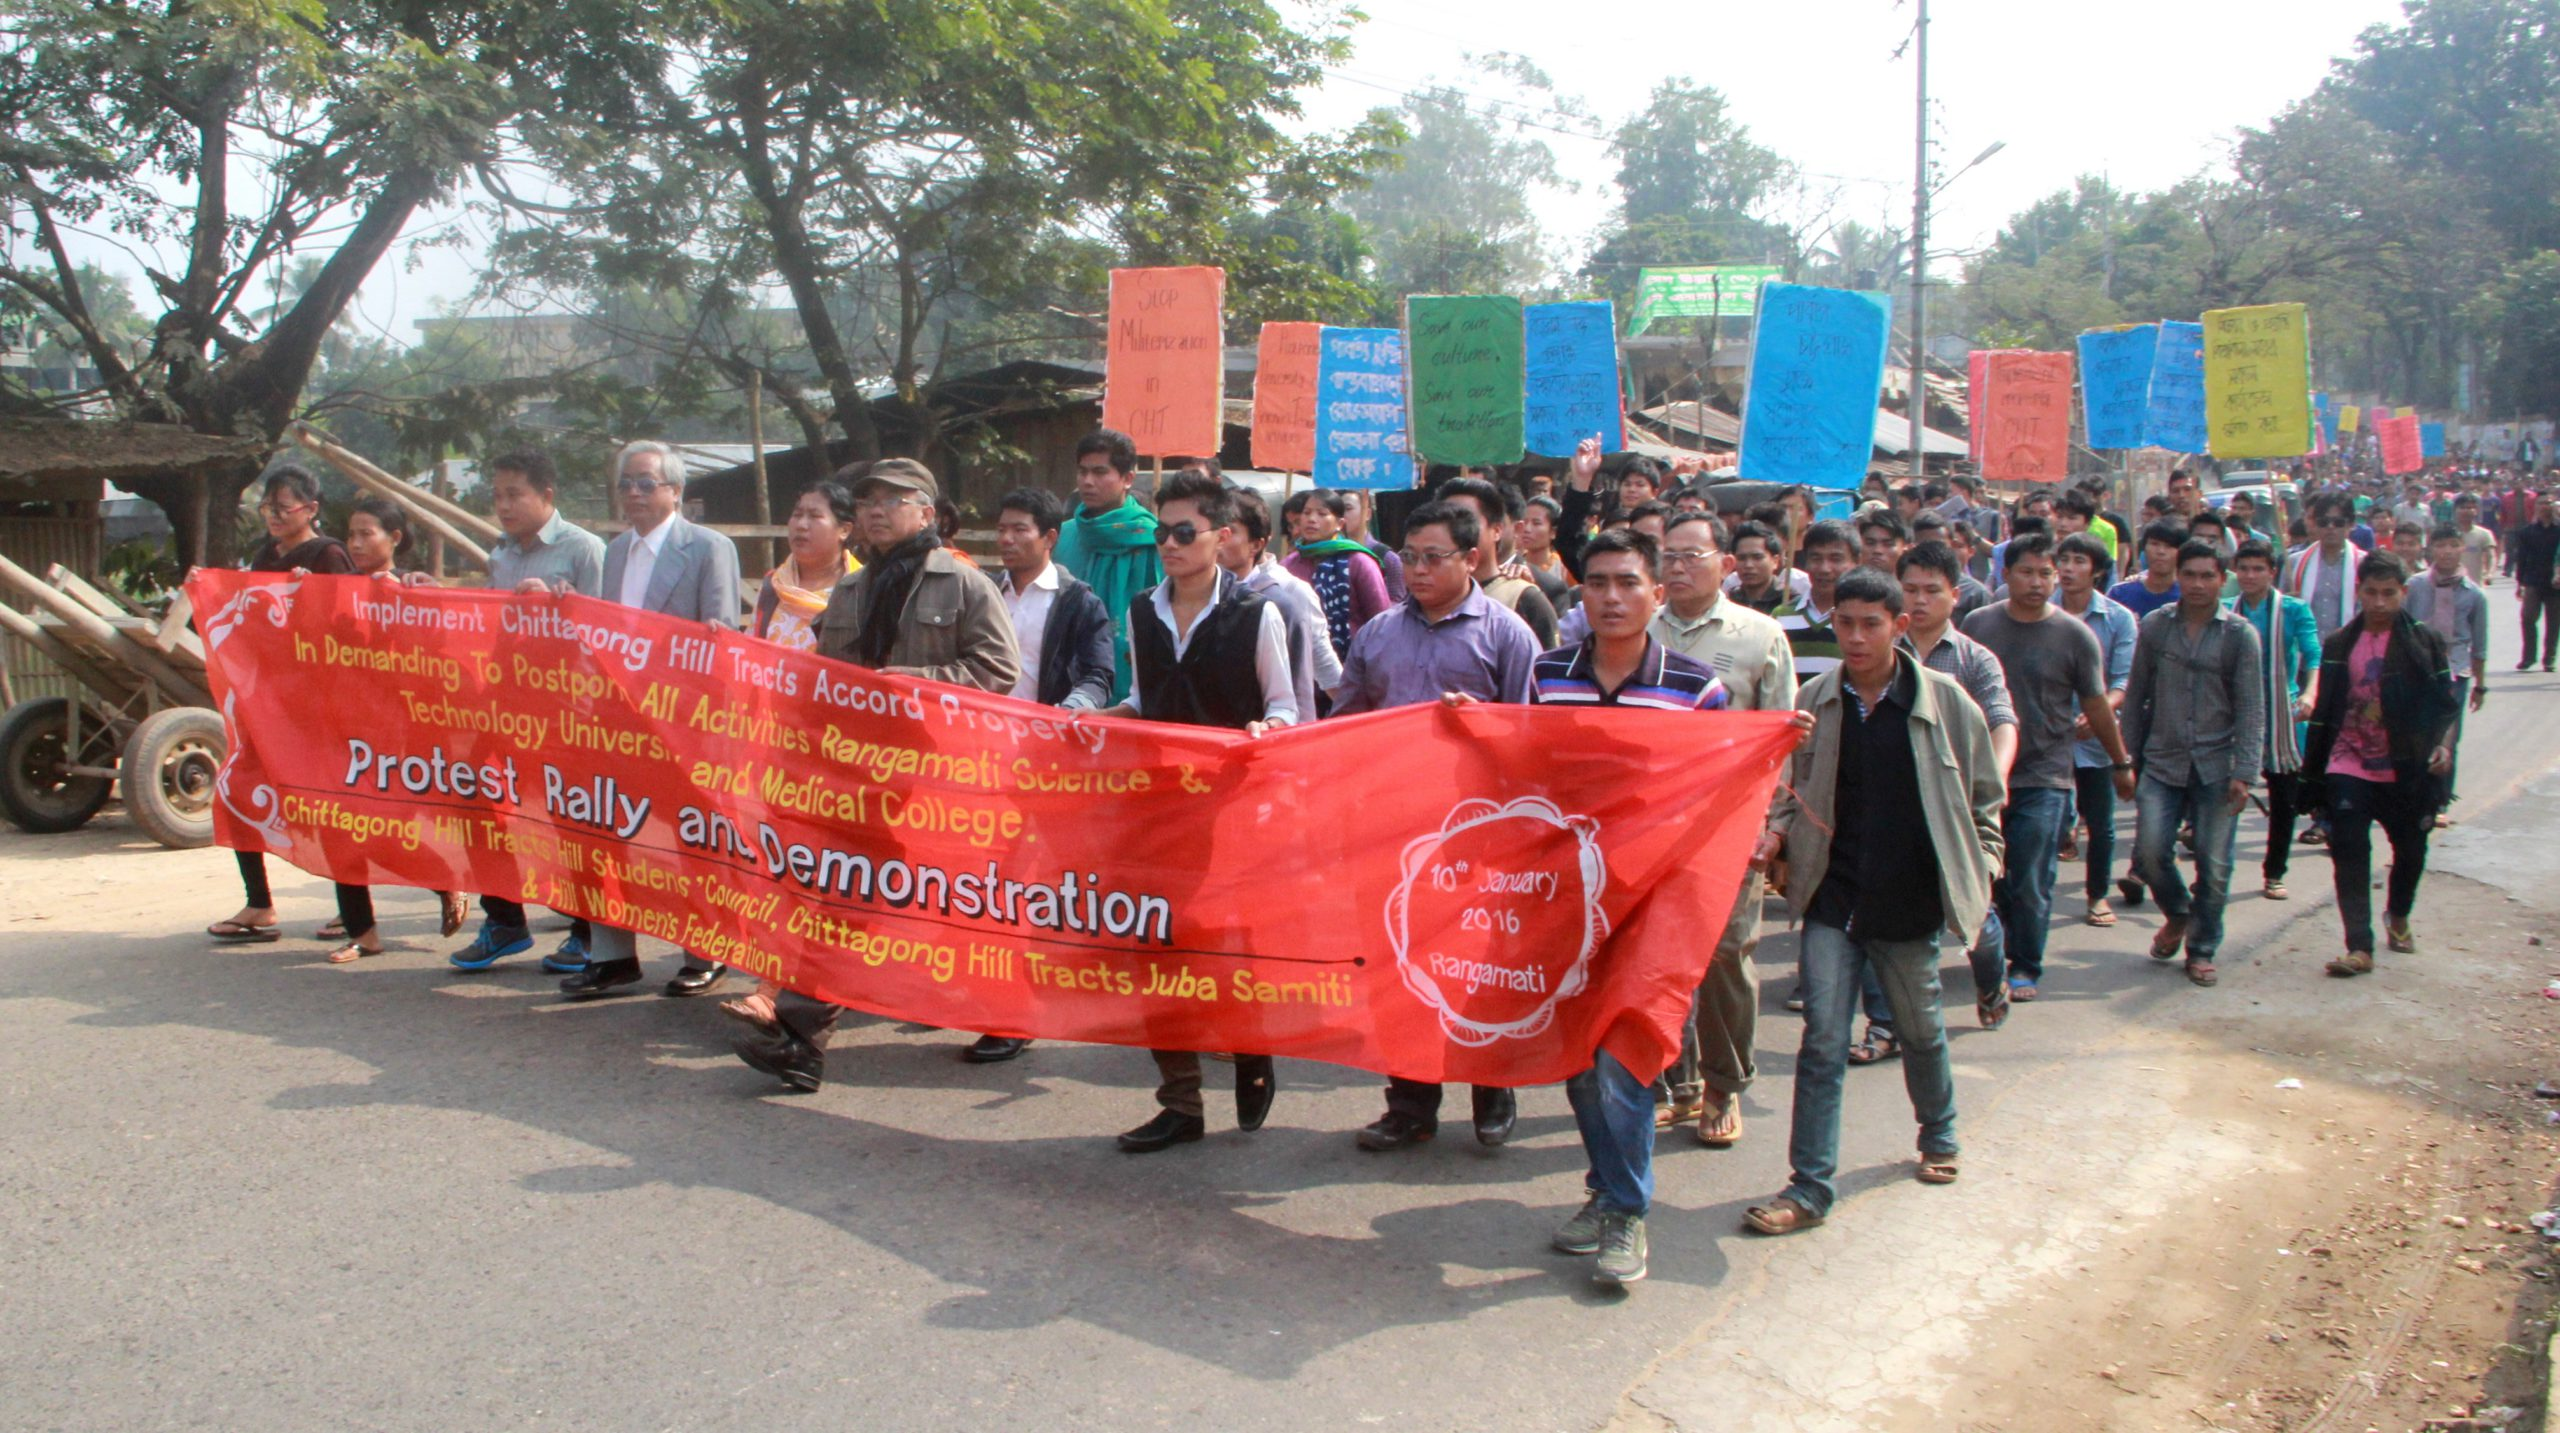 Protest Against University-Medical College